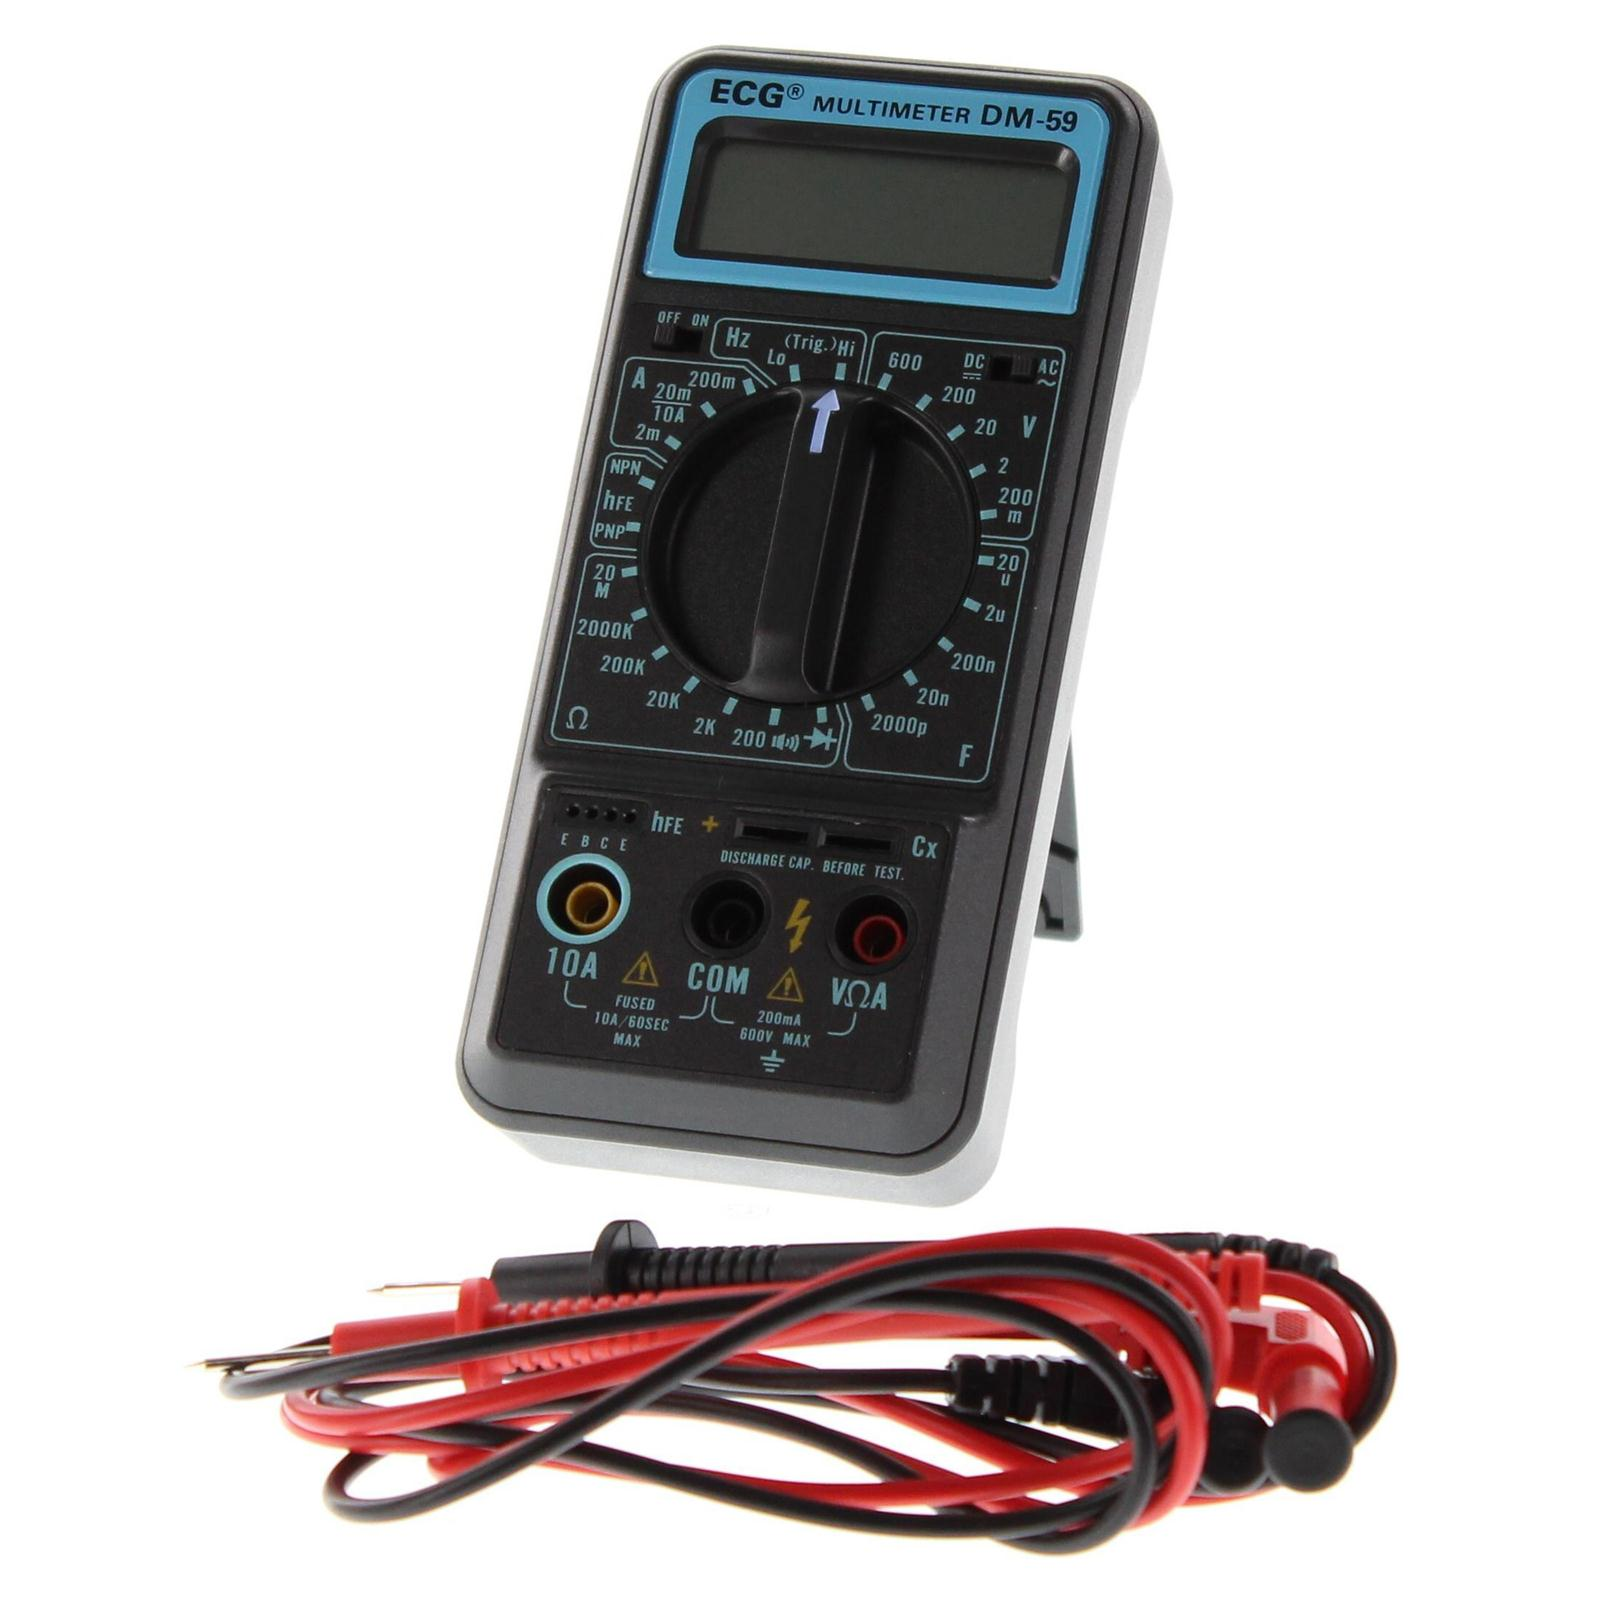 Ecg Digital Multimeters Dm 59 Free Shipping On Most Orders Over Electronic 99 At Dx Engineering